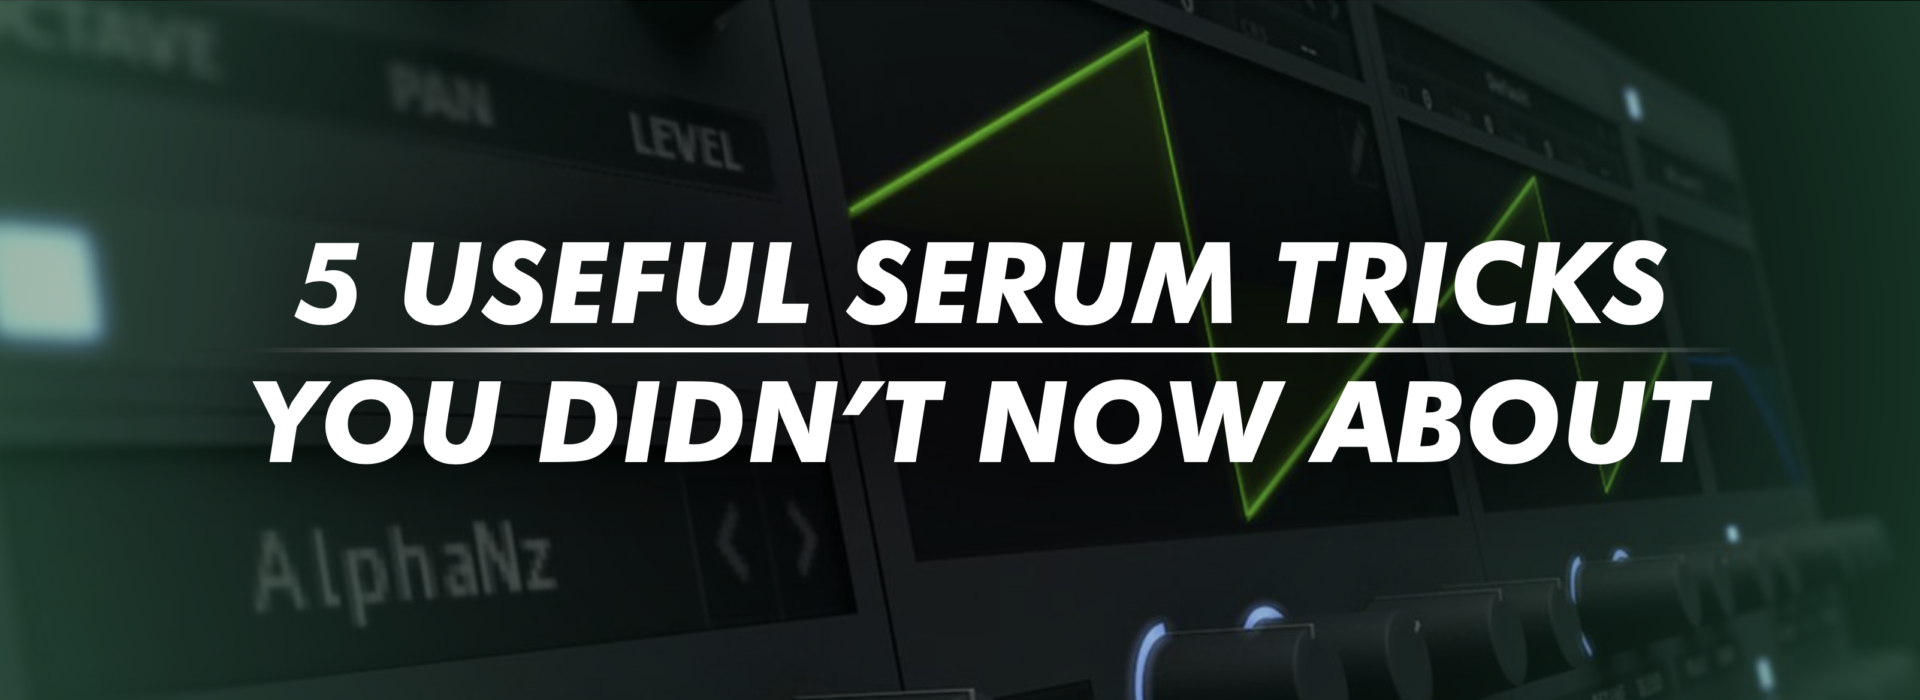 5 USEFUL SERUM TRICKS YOU DIDN'T KNOW ABOUT